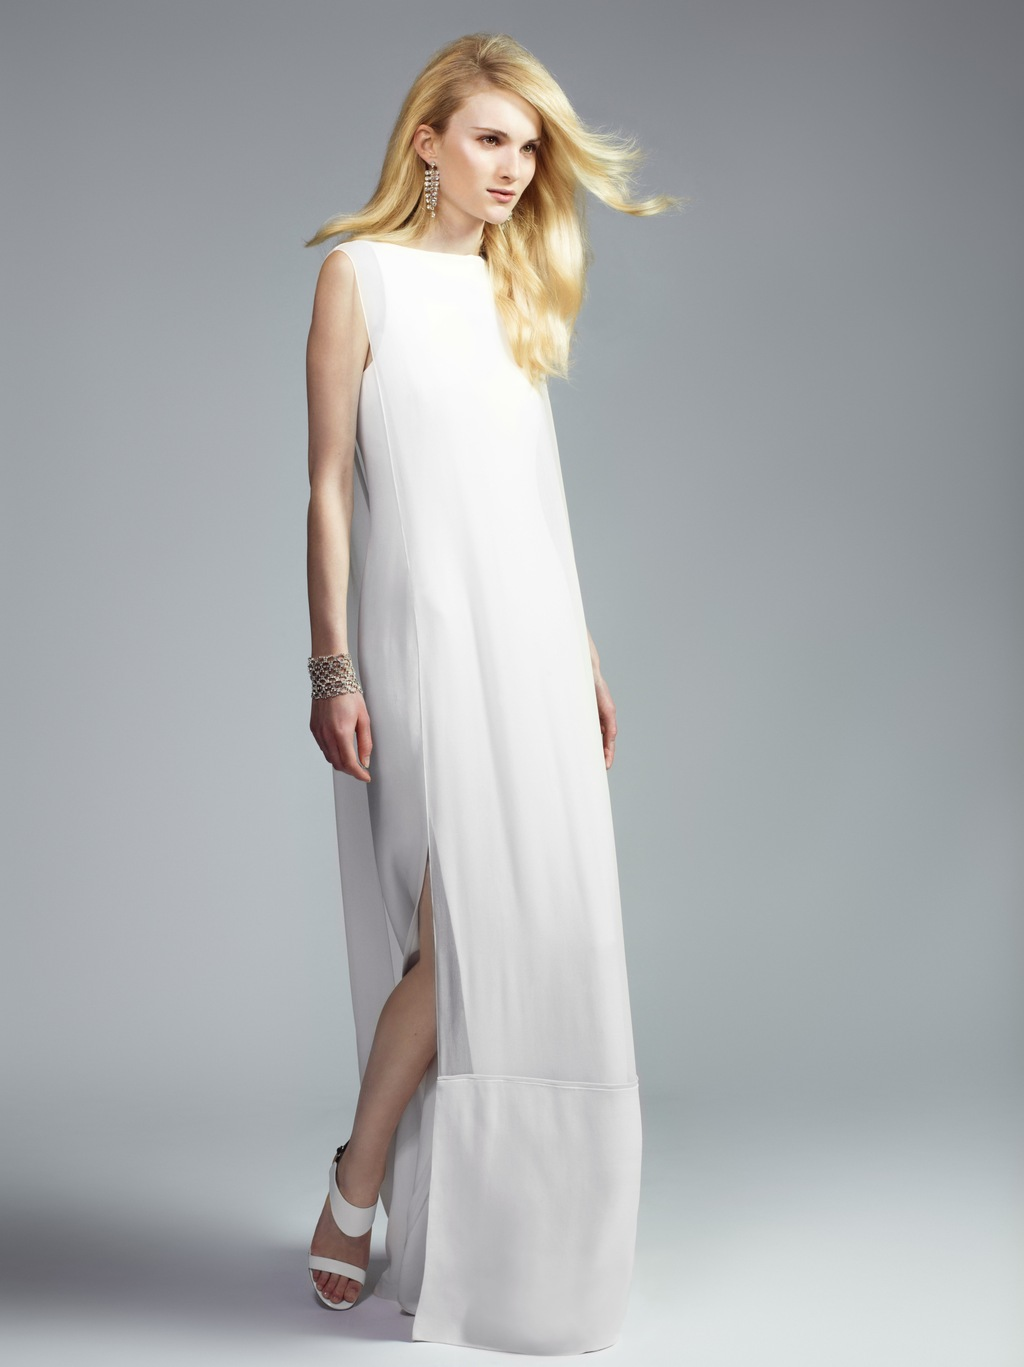 Crepe wedding dress 2013 exclusive bridal designer collection from chalayan crepe wedding dress 2013 exclusive bridal designer collection from net a porter ombrellifo Image collections